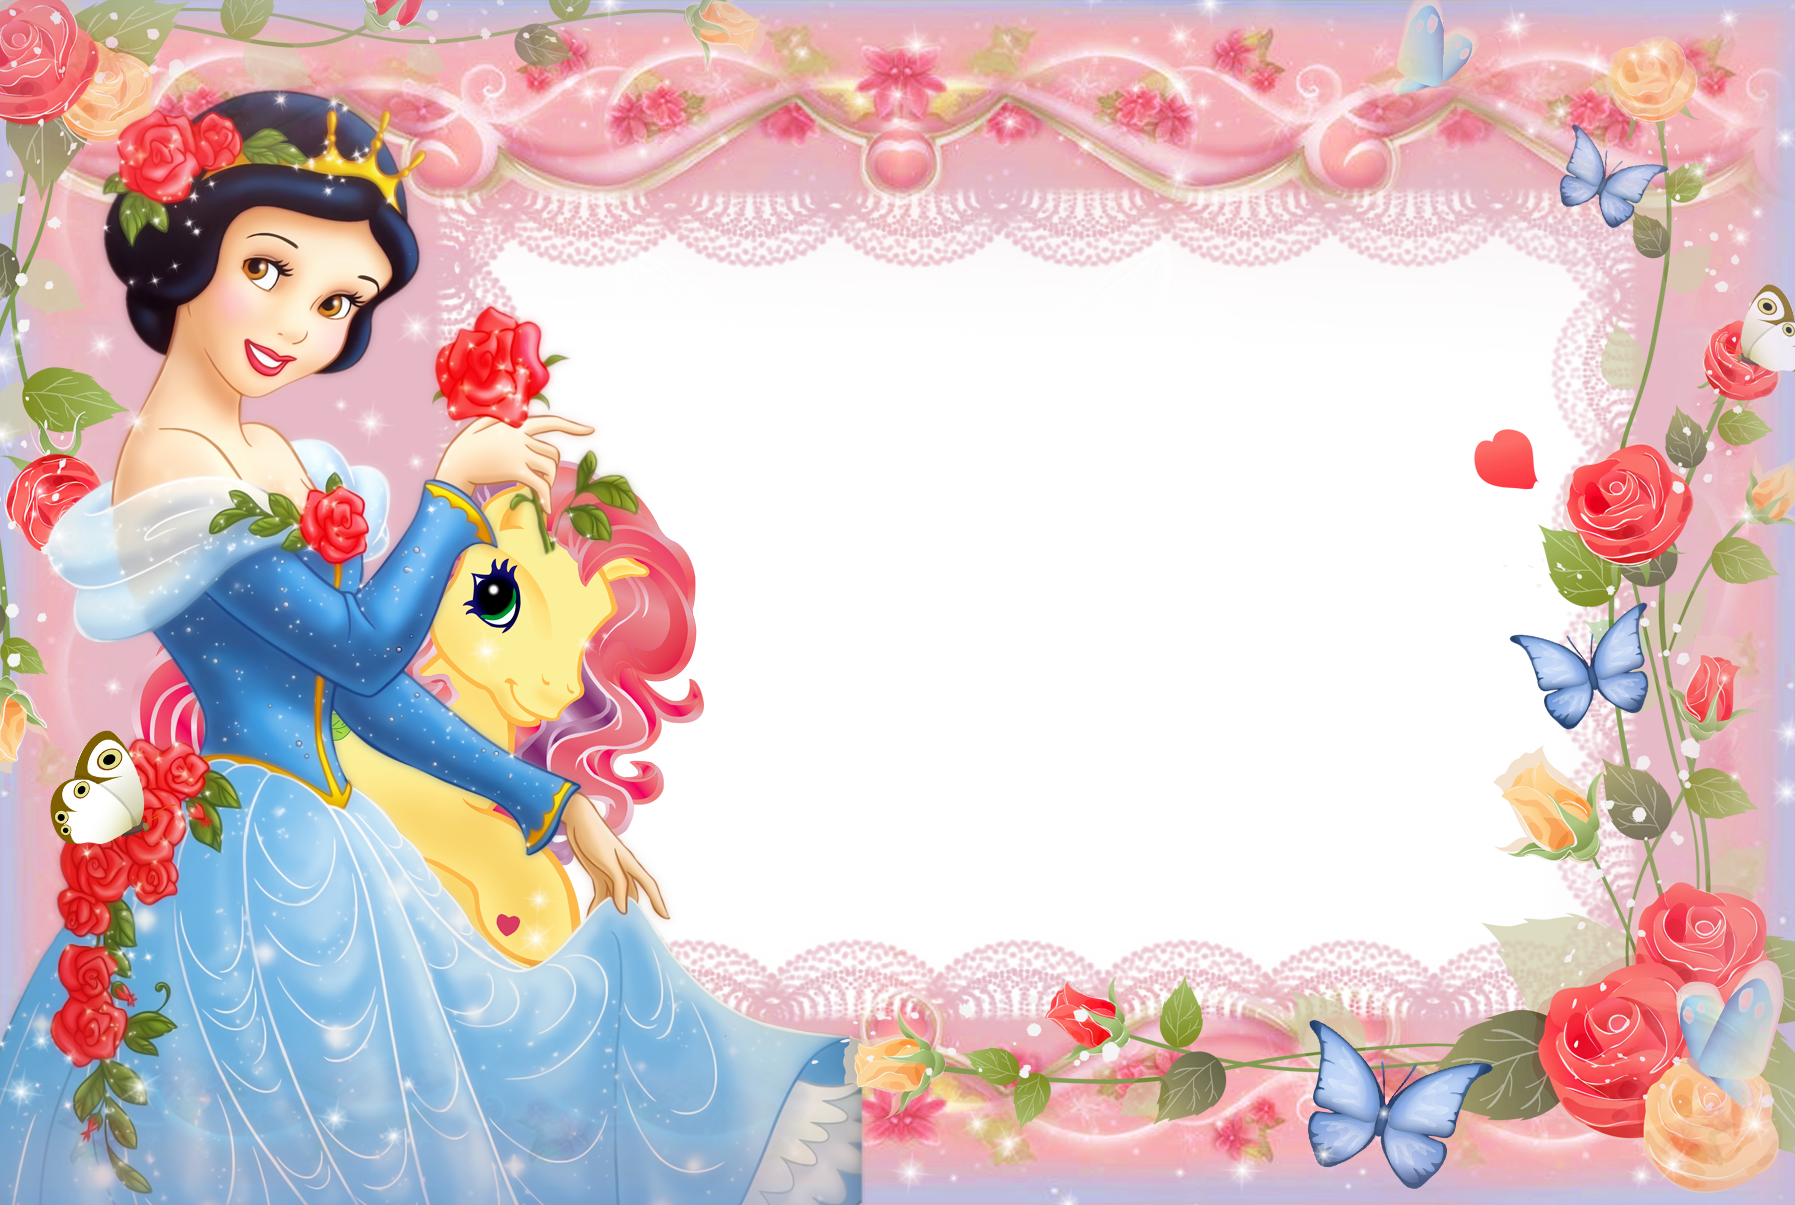 Girls Transparent Frame with Princess Snow White | Gallery ...